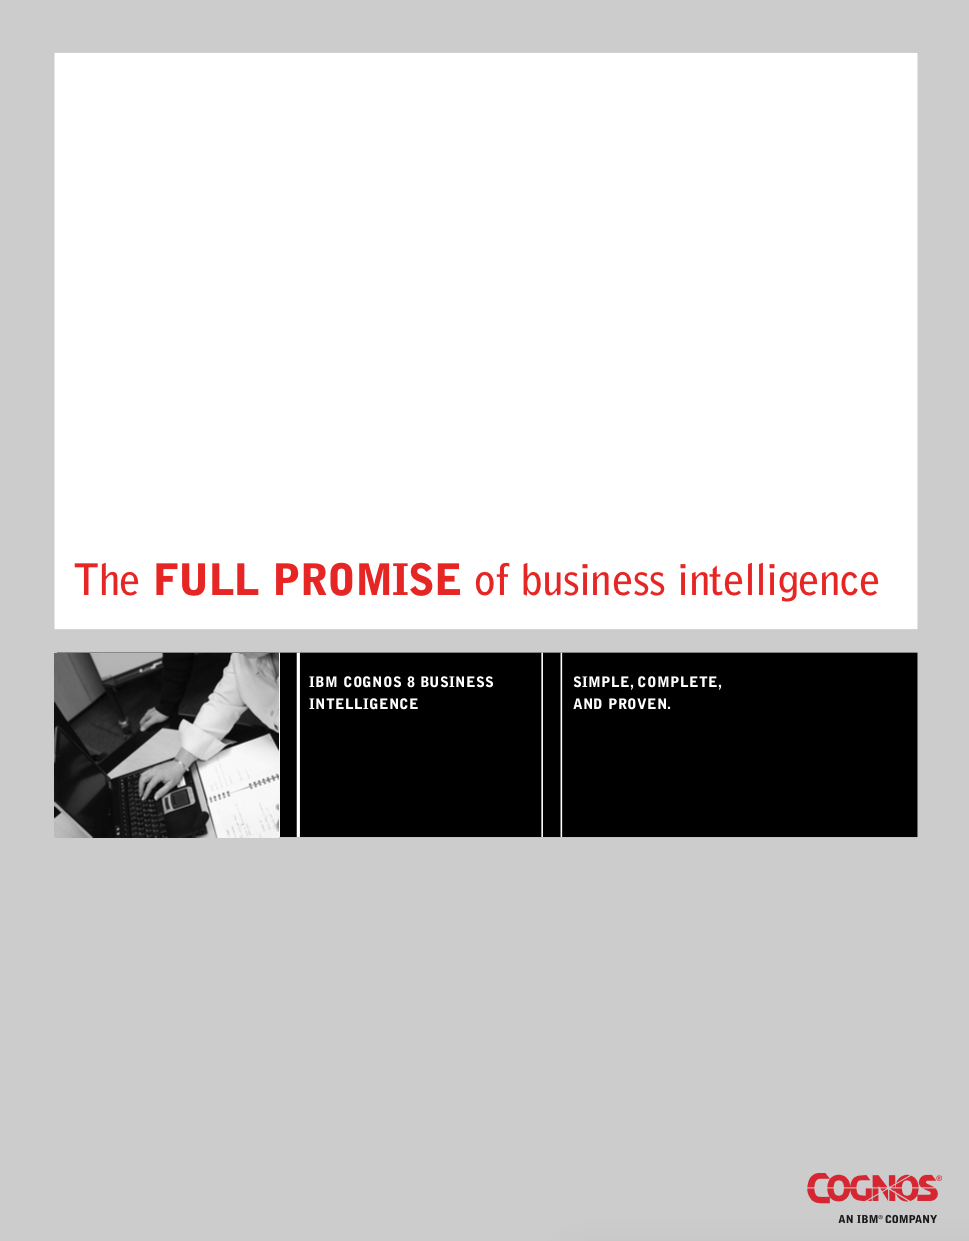 The Full Promise of Business Intelligence